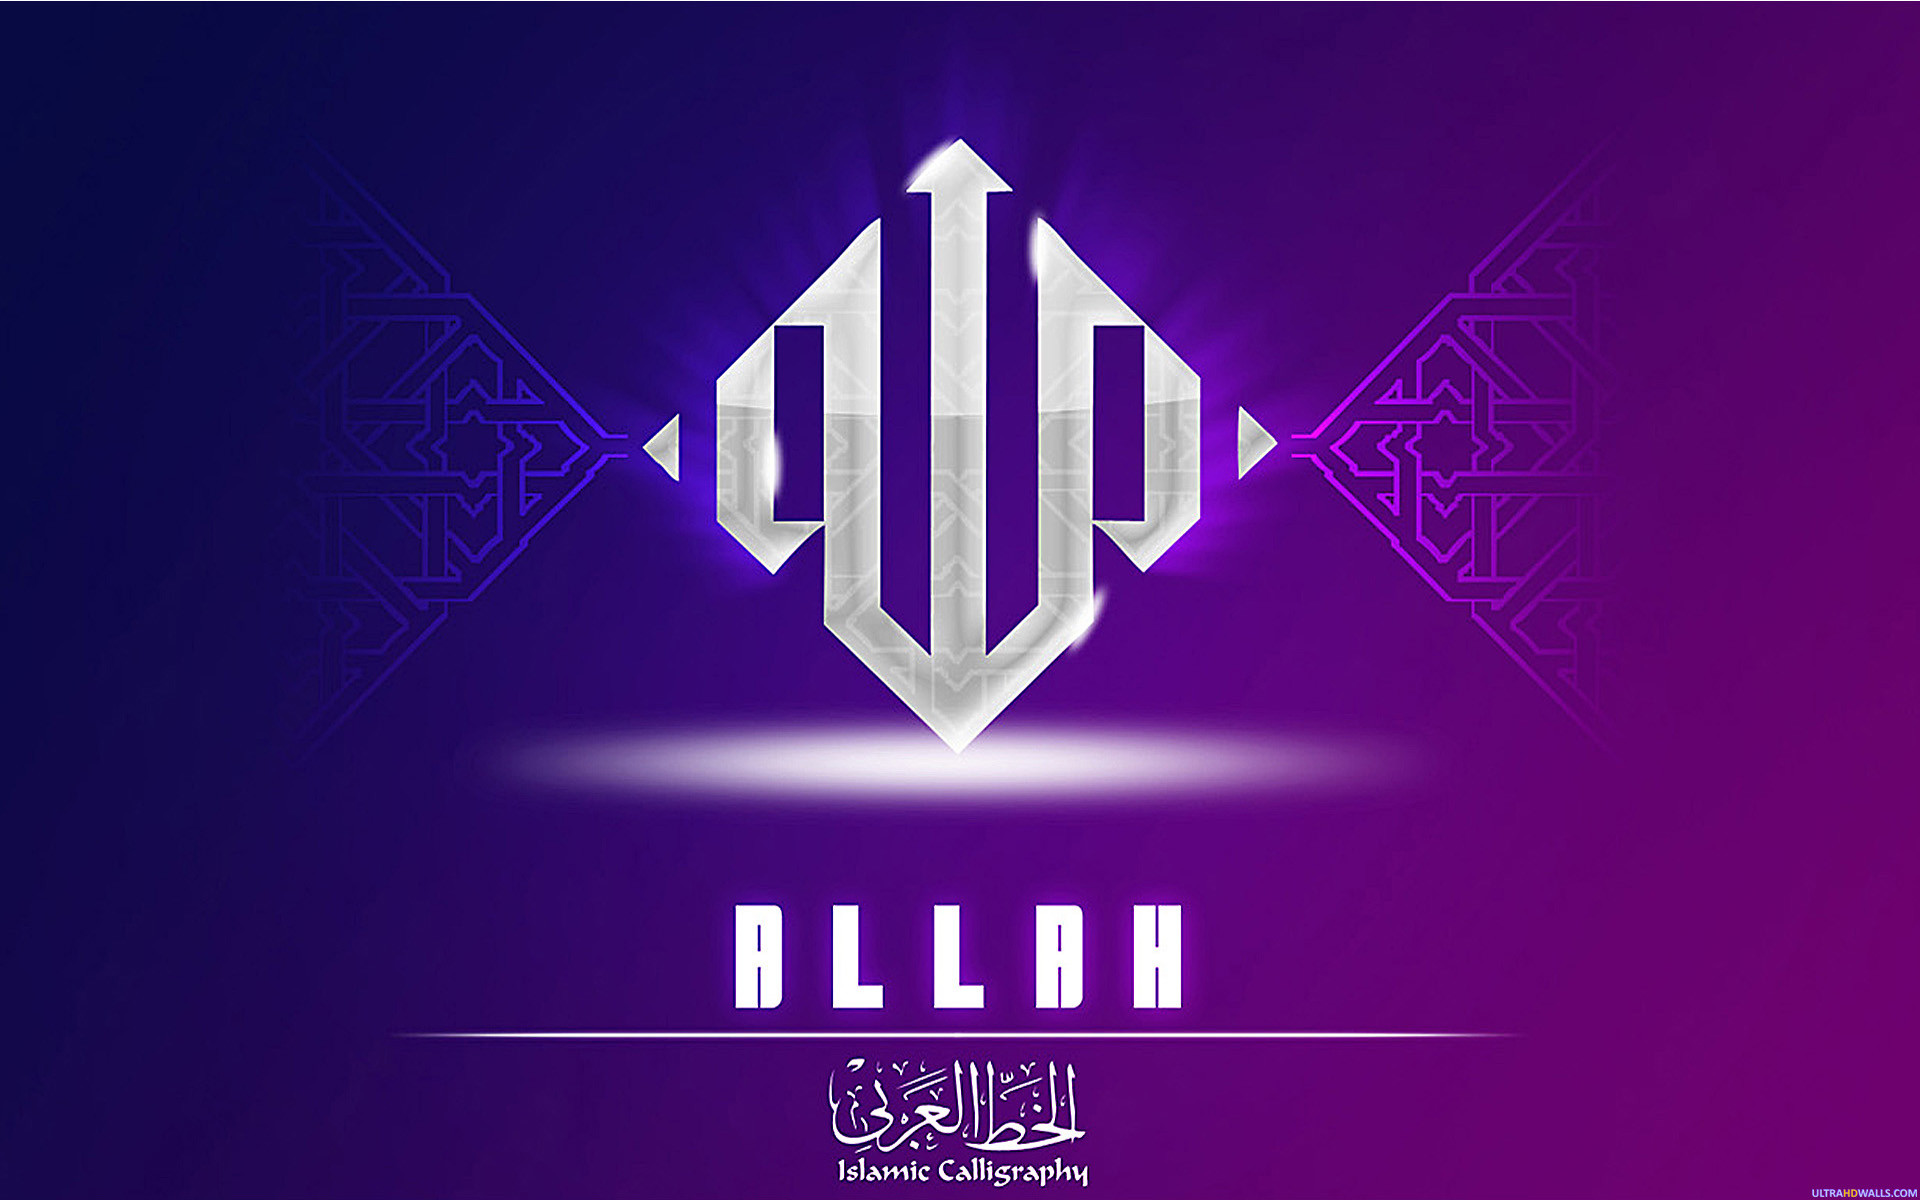 1920x1200 Islamic-wallpaper-calligraphy-ALLAH-arabic -khatati-purple-background-1920×1200